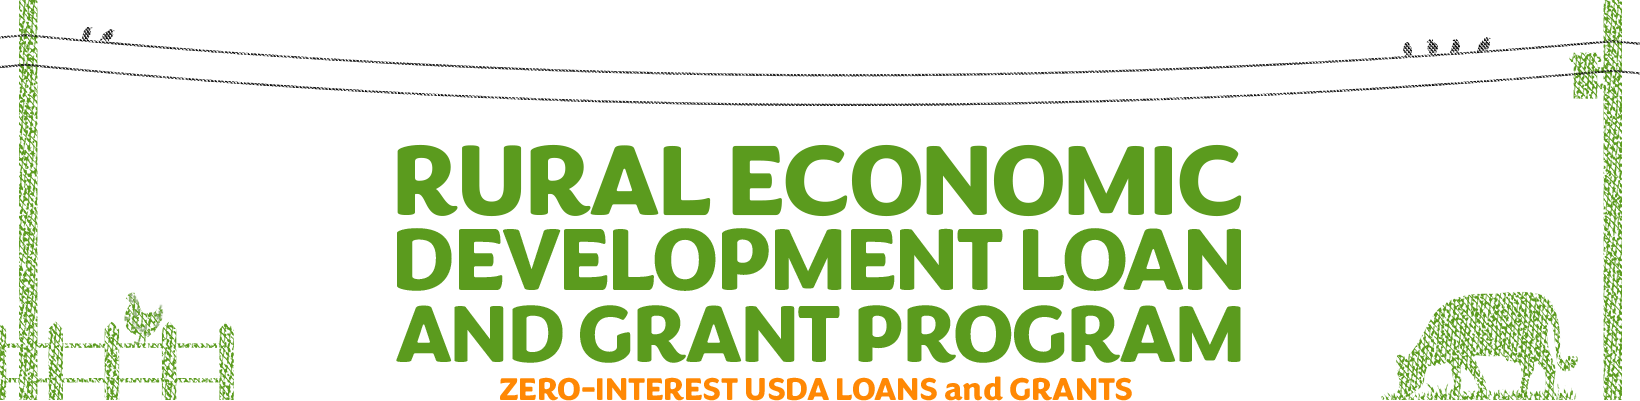 Rural economic development loan and grant program. Zero-interest USDA loans passed through to local businesses.